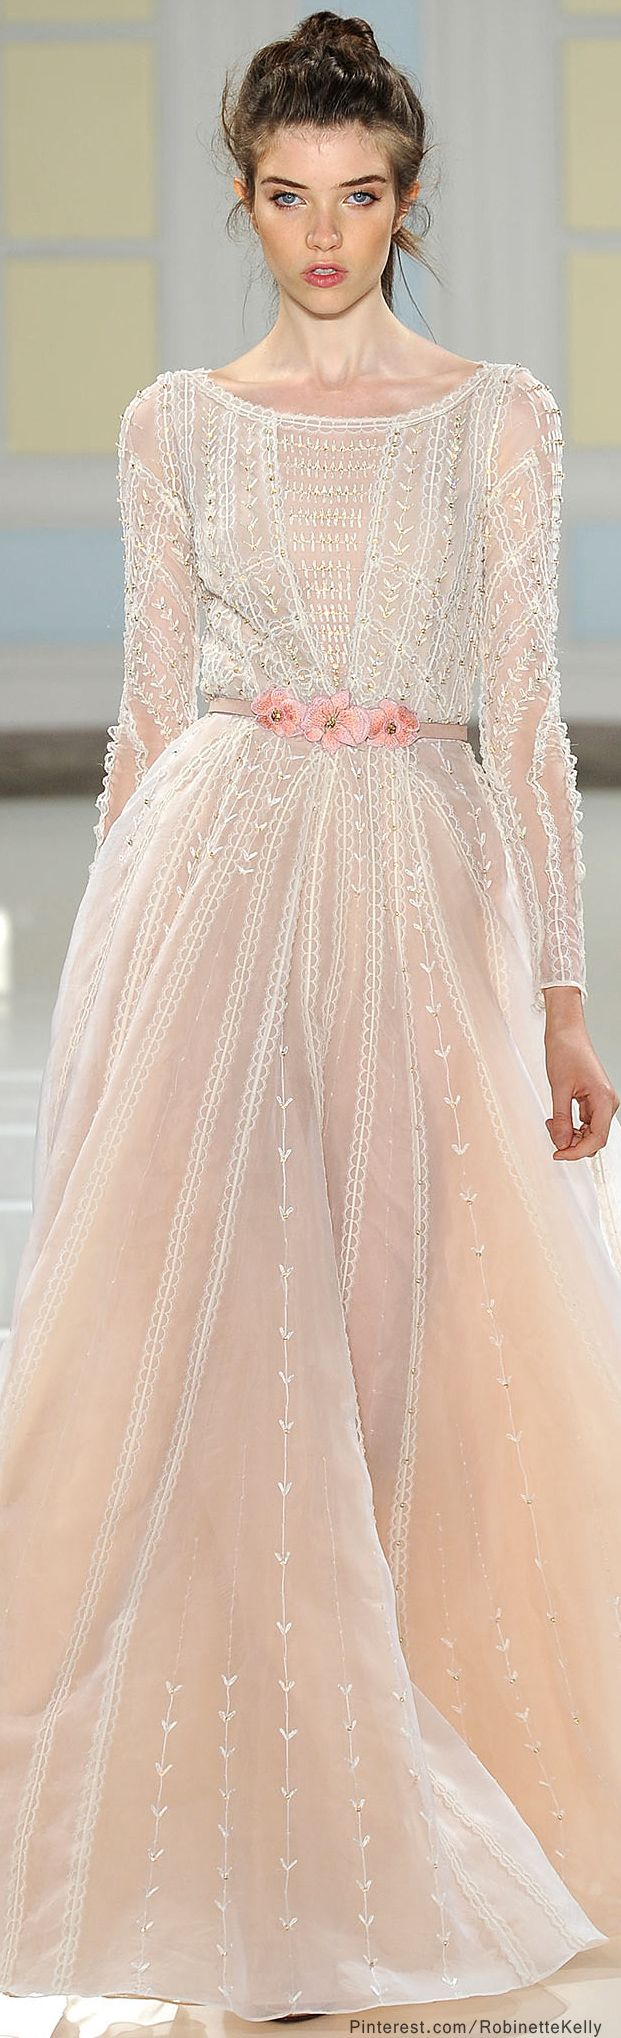 Temperley London | S/S 2014 | TedBaker;Temperley;Terani | Pinterest | Temperley, Gowns and Couture